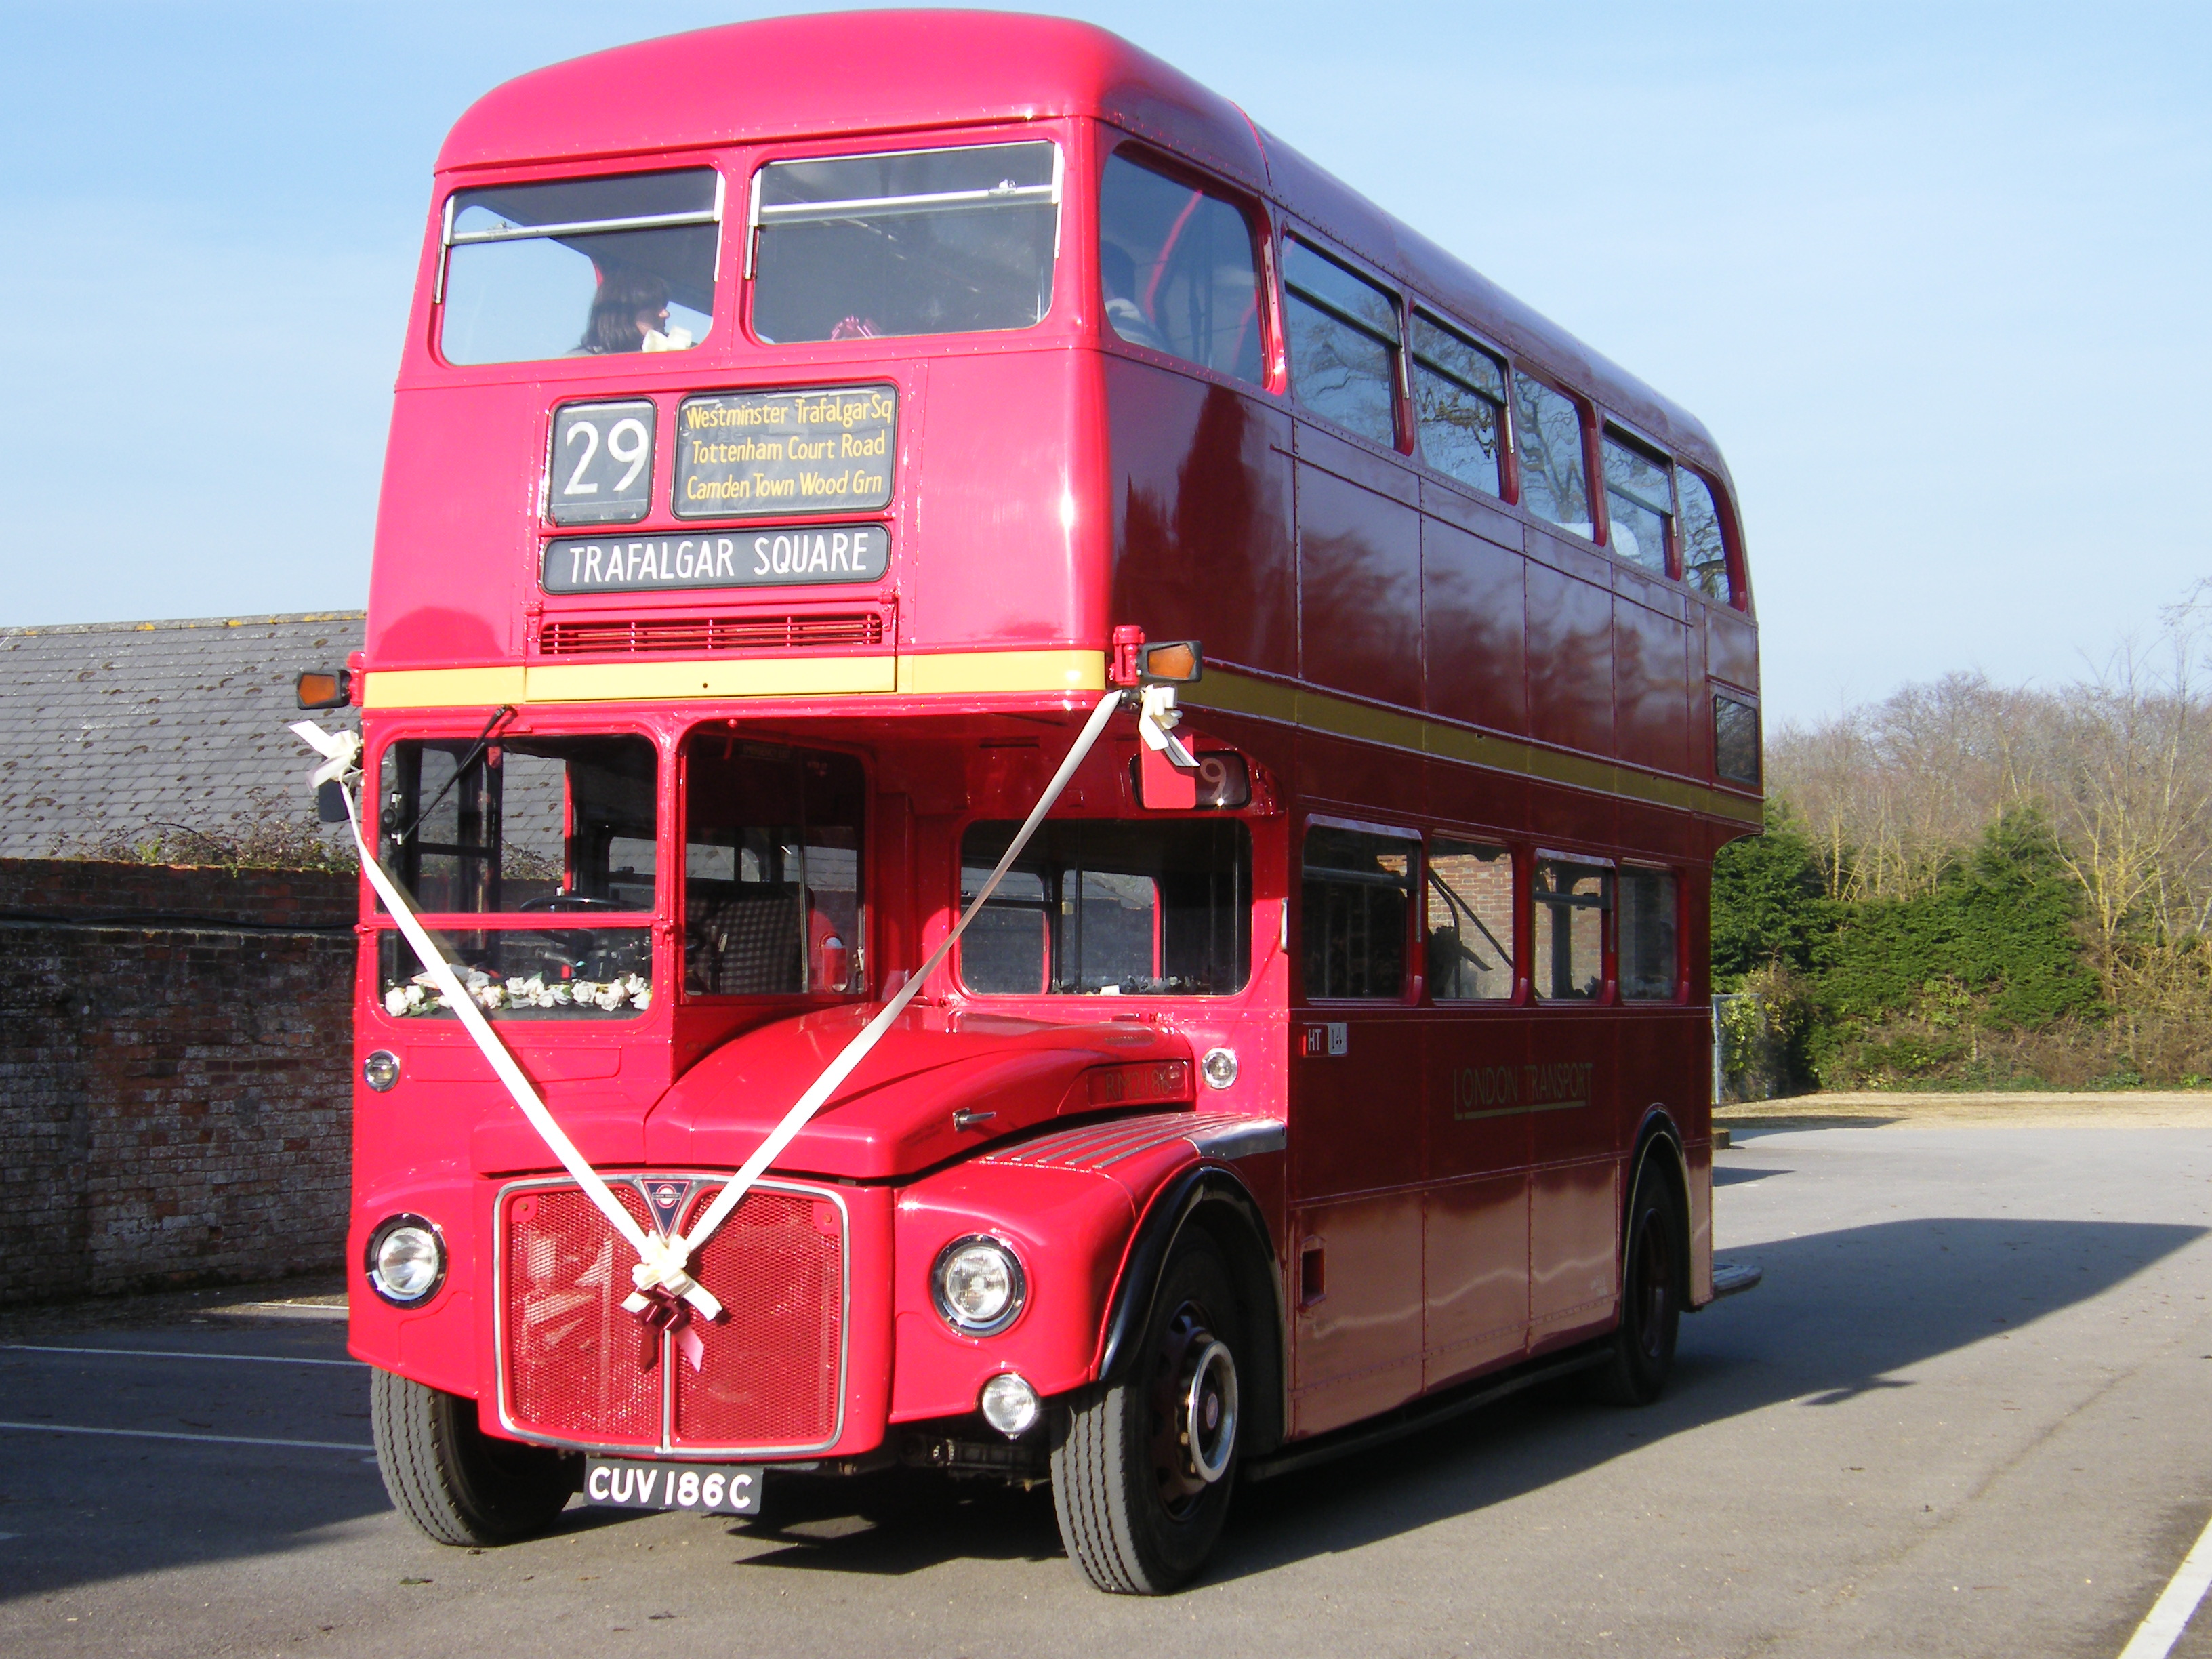 Old fashioned double decker bus